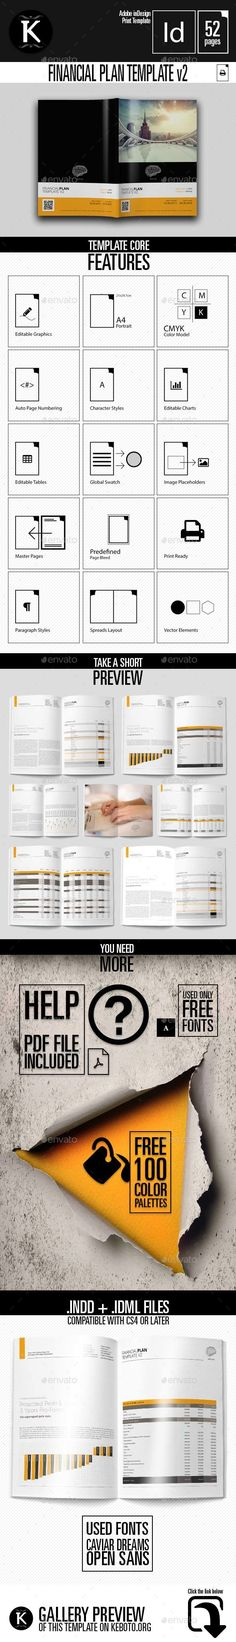 1490 best Financial Planning Tips and Tricks images on Pinterest     20 Pages Business Plan Template US Letter